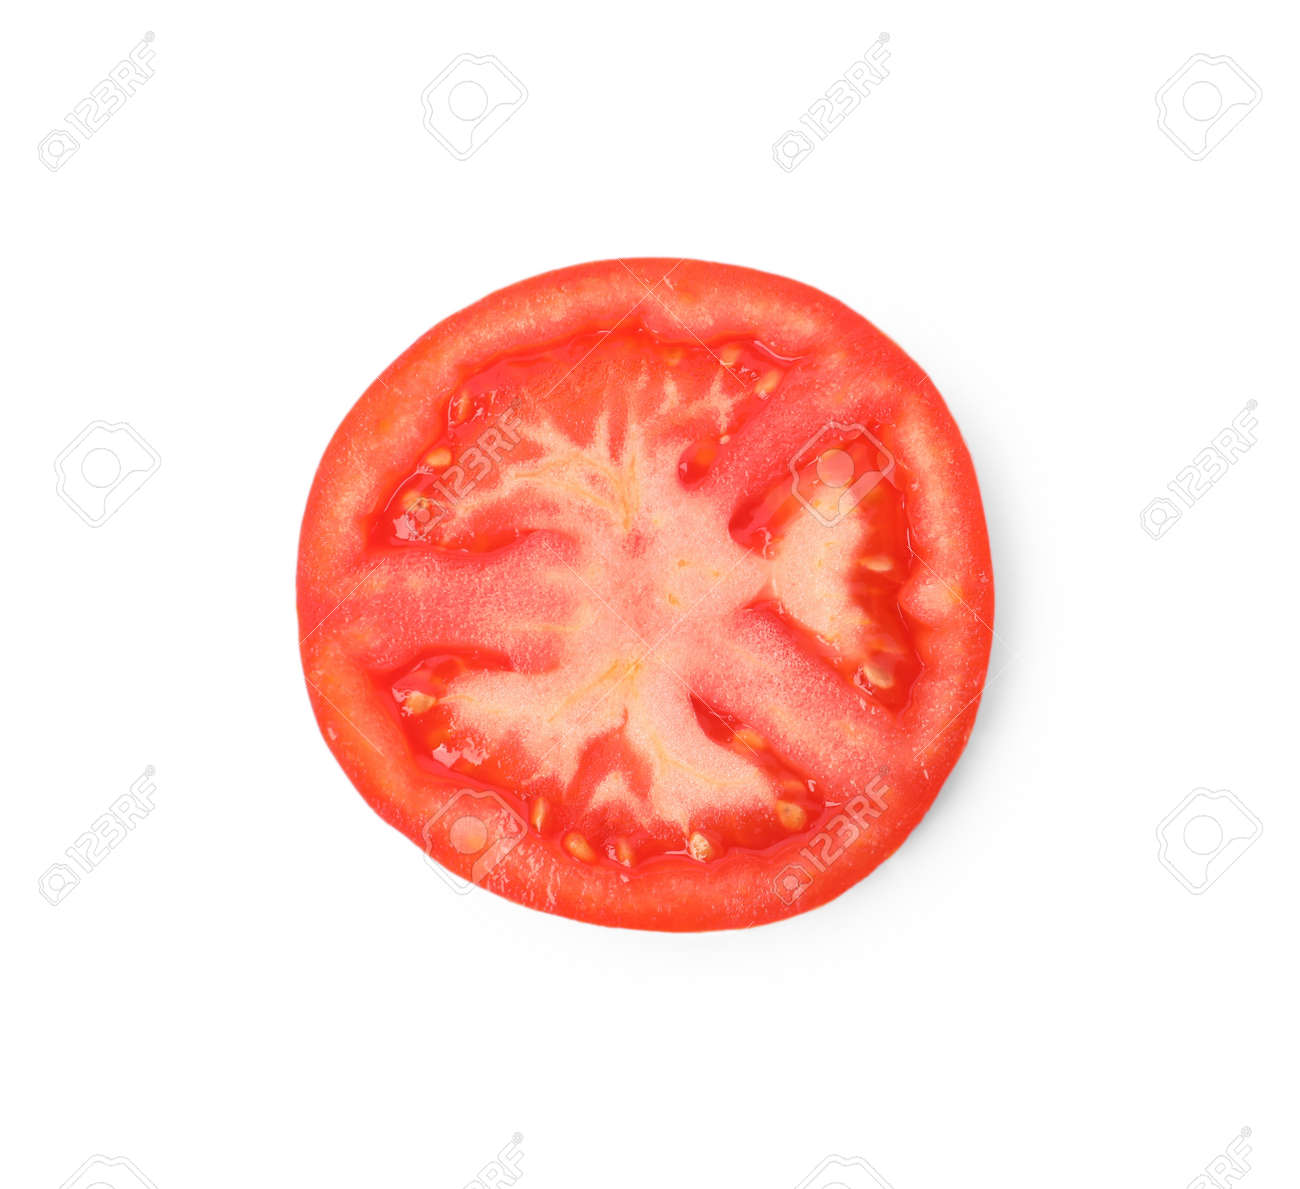 Slice of ripe tomato isolated on white, top view - 168745775